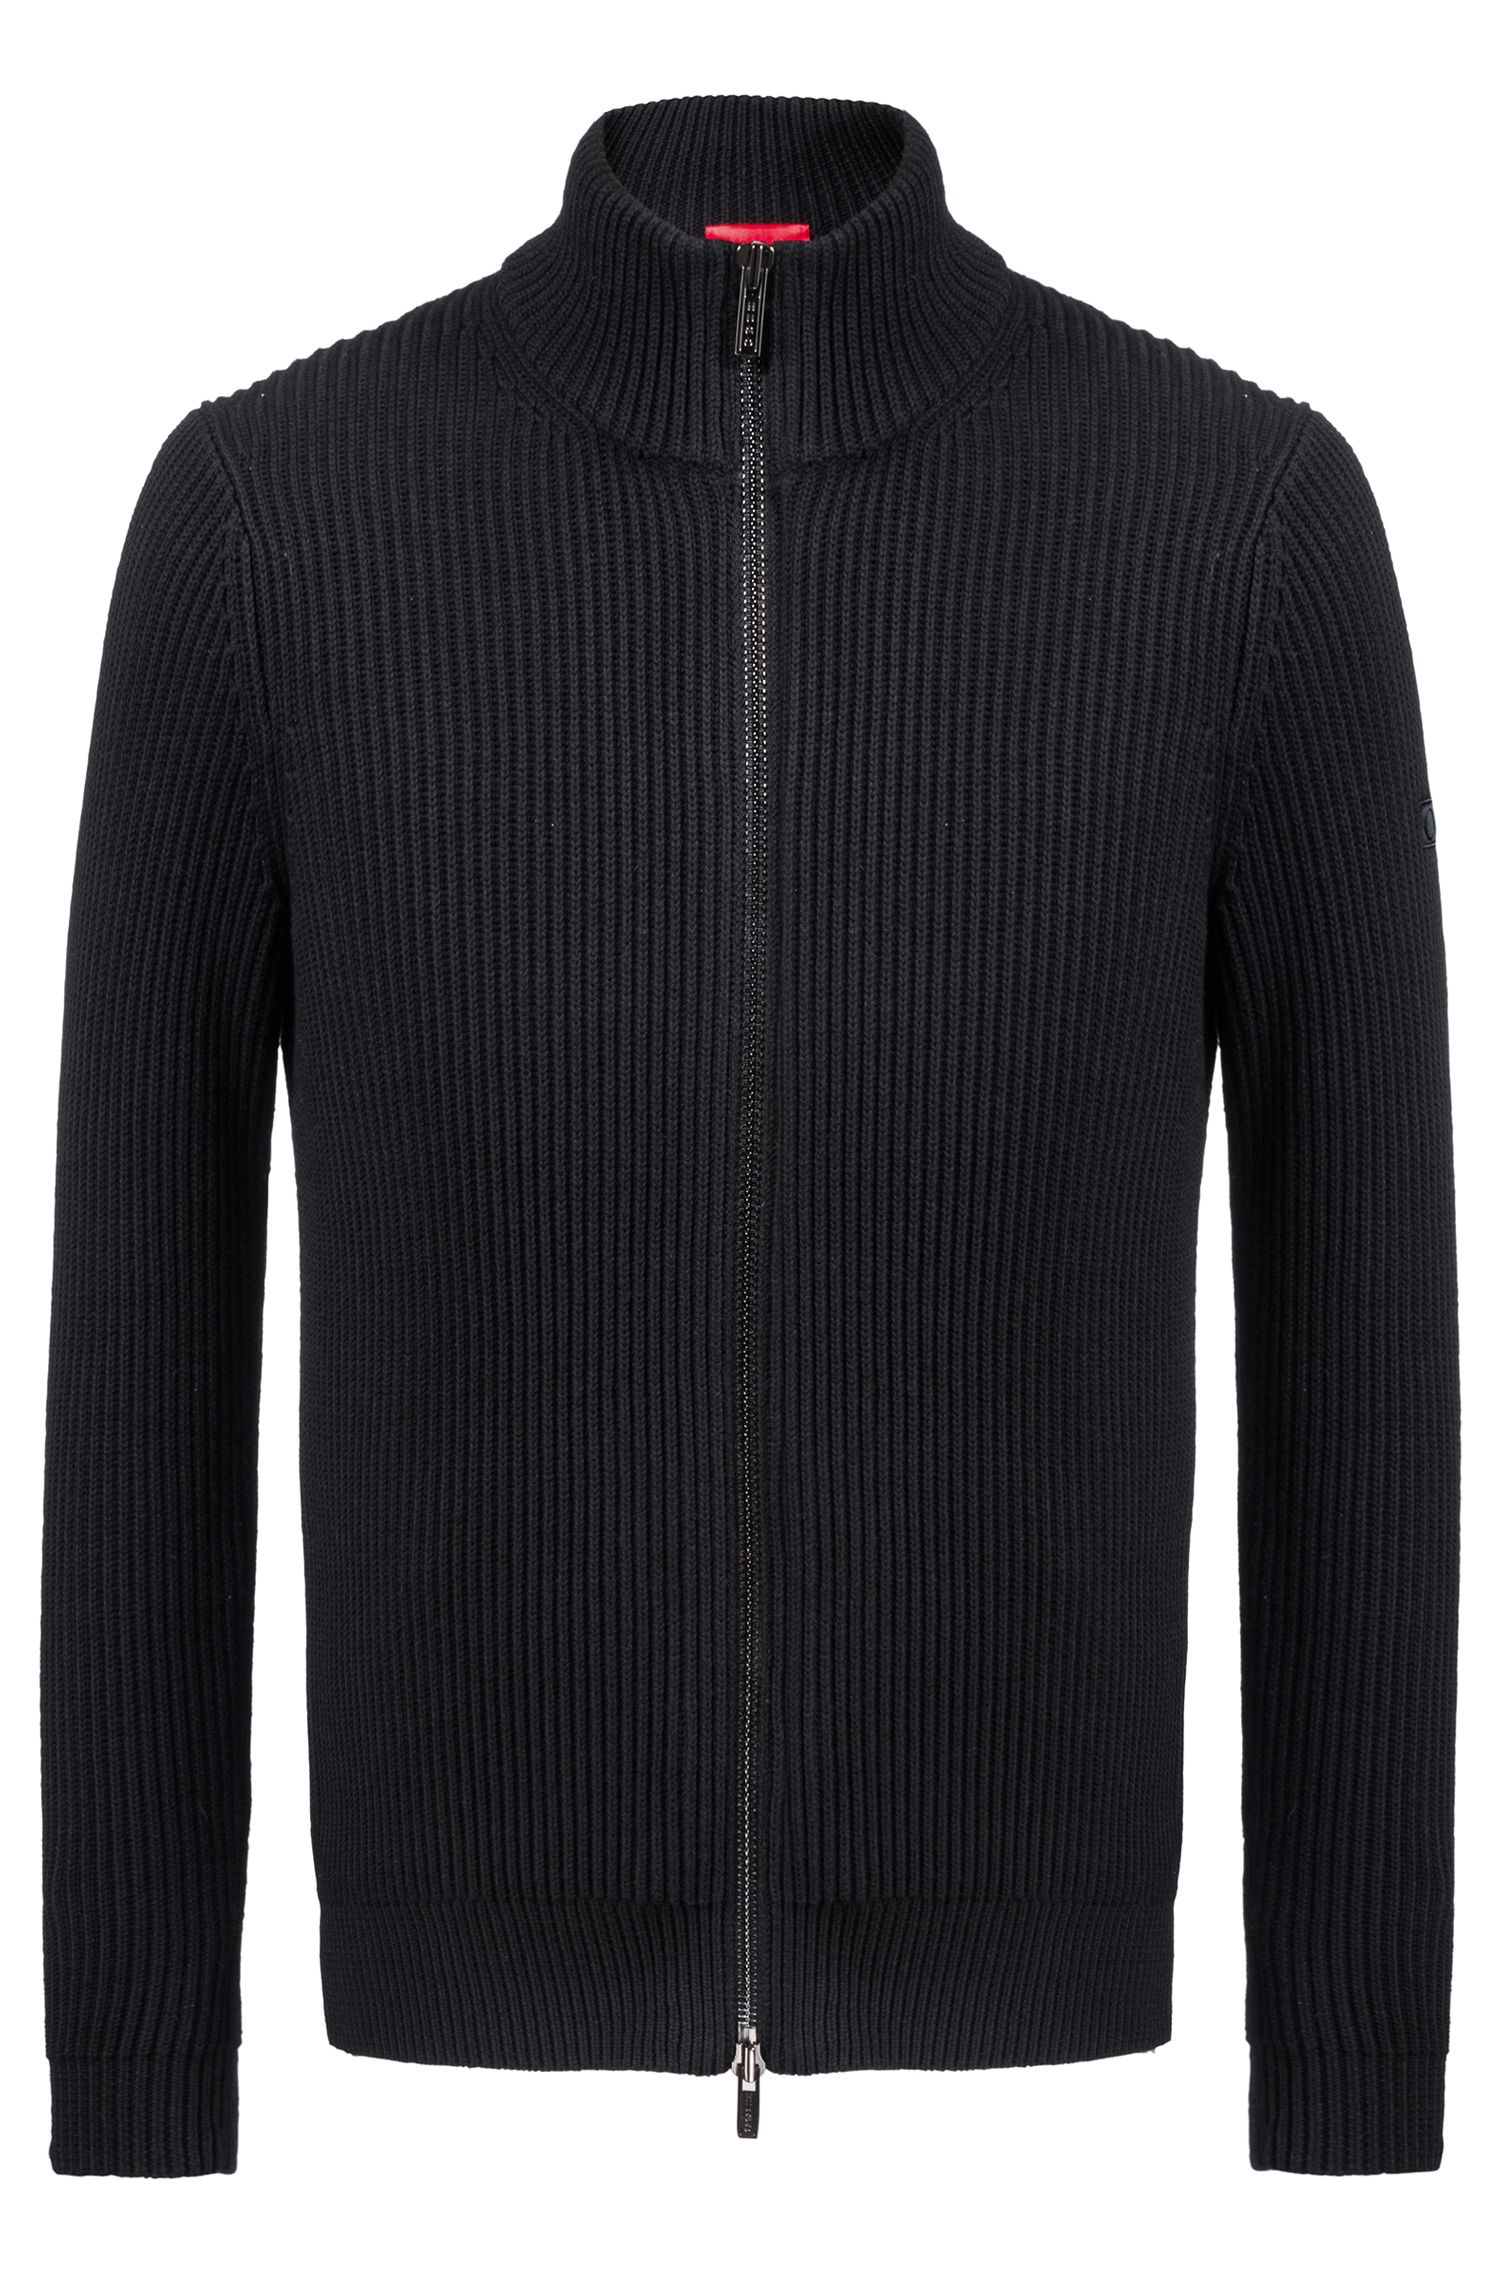 Zippered knitted jacket in a wool-cotton blend, Black